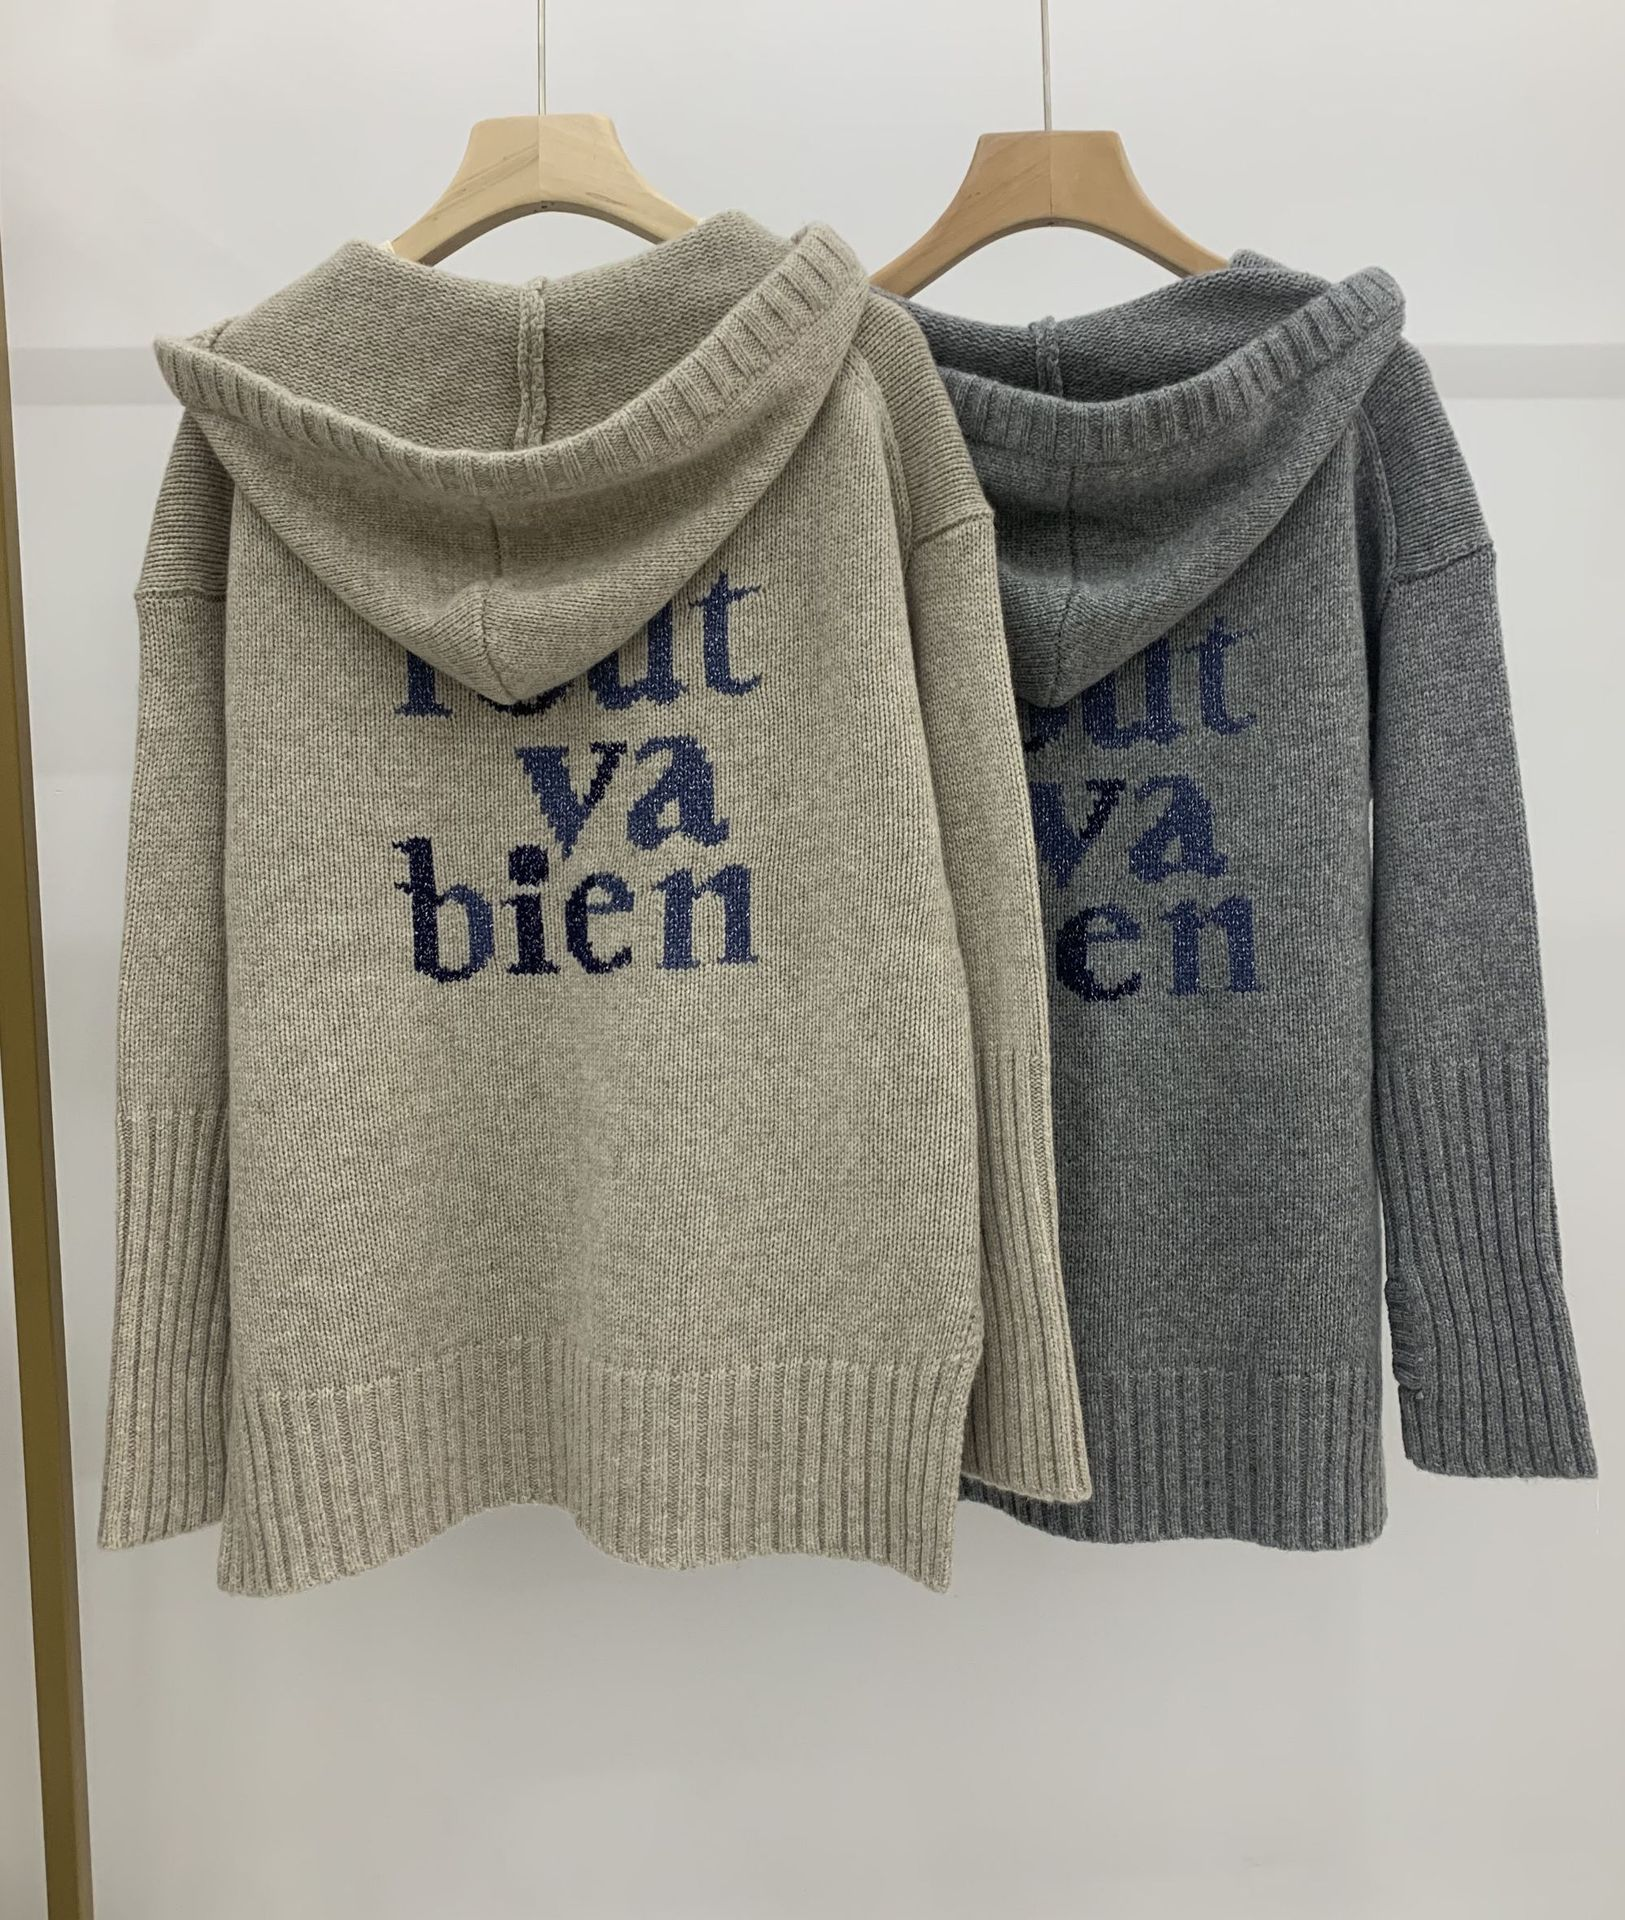 2021 Autumn / Winter New Zipper with Hat Front Short Back Long Back Letter Design Cashmere Sweater Top Girl enlarge